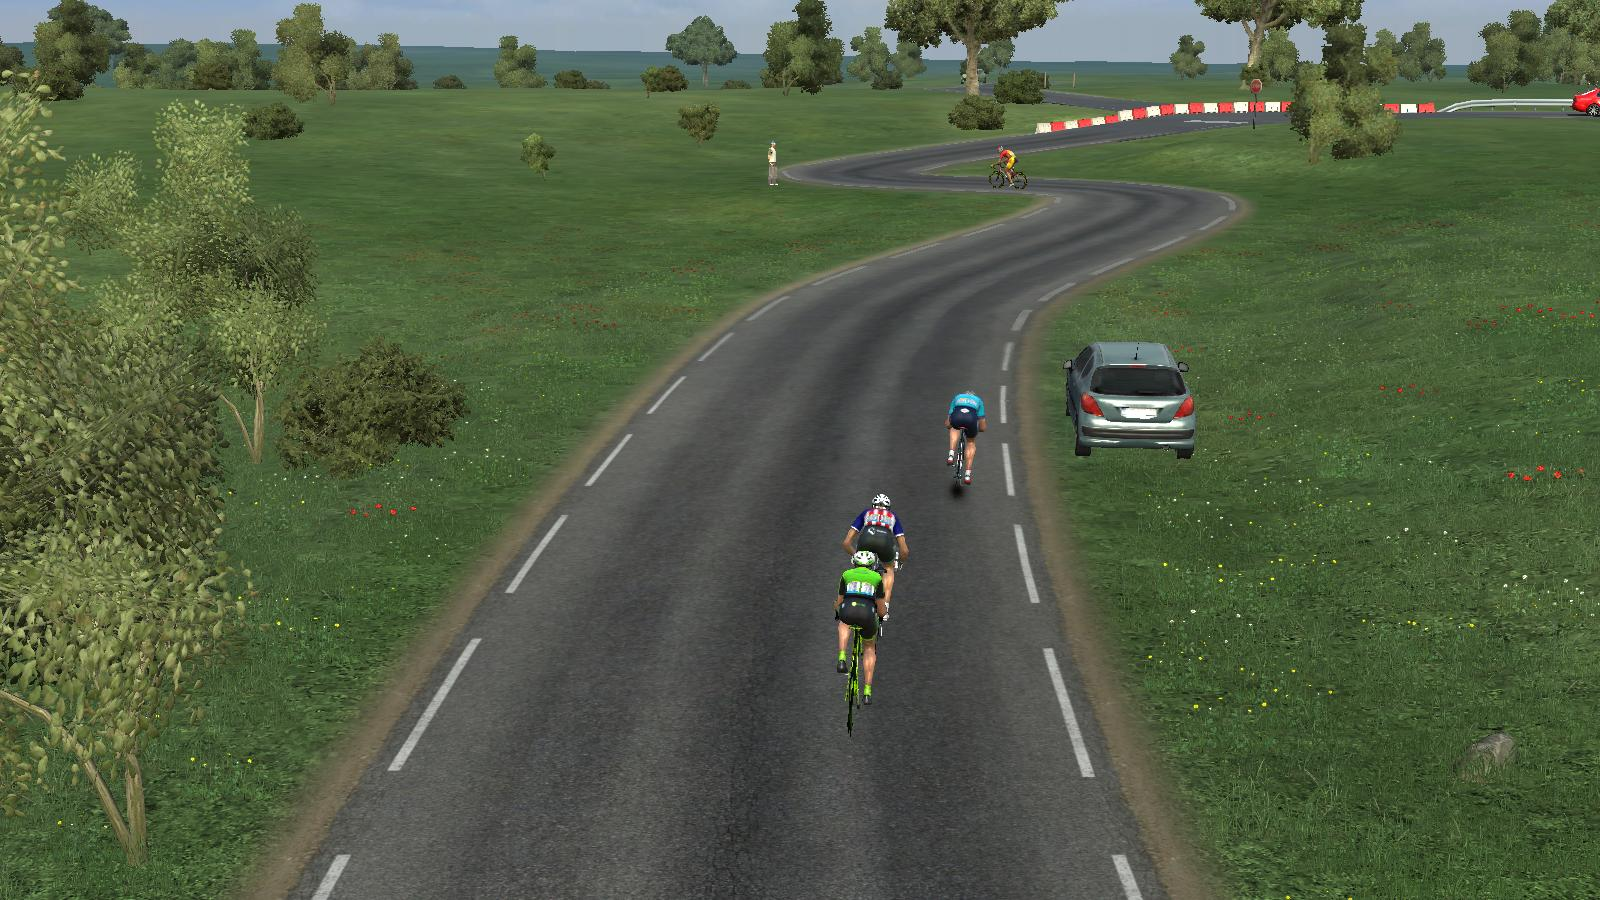 pcmdaily.com/images/mg/2019/Races/PTHC/Rheden/8.jpg